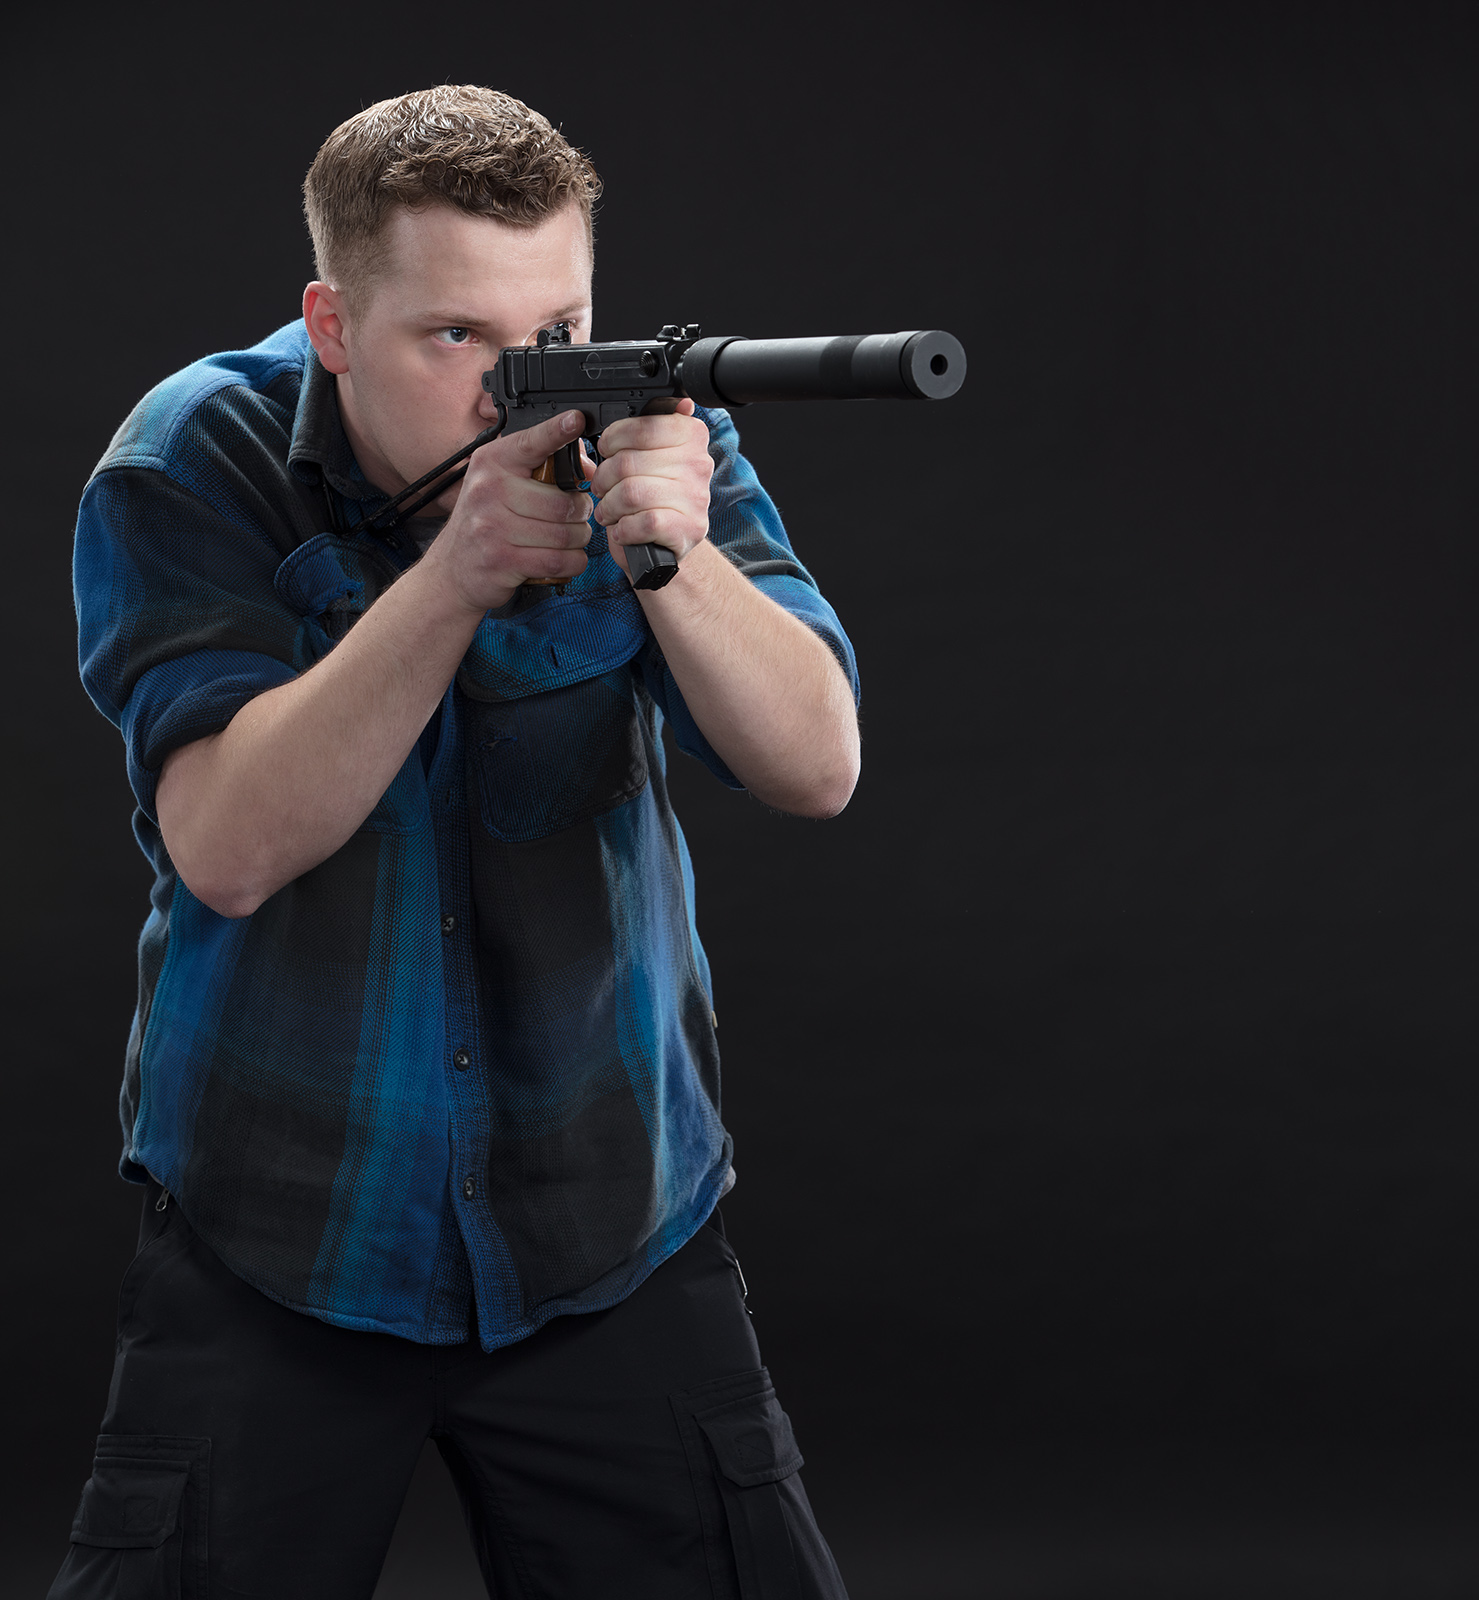 connor_vz61_suppressed_D6A0513web